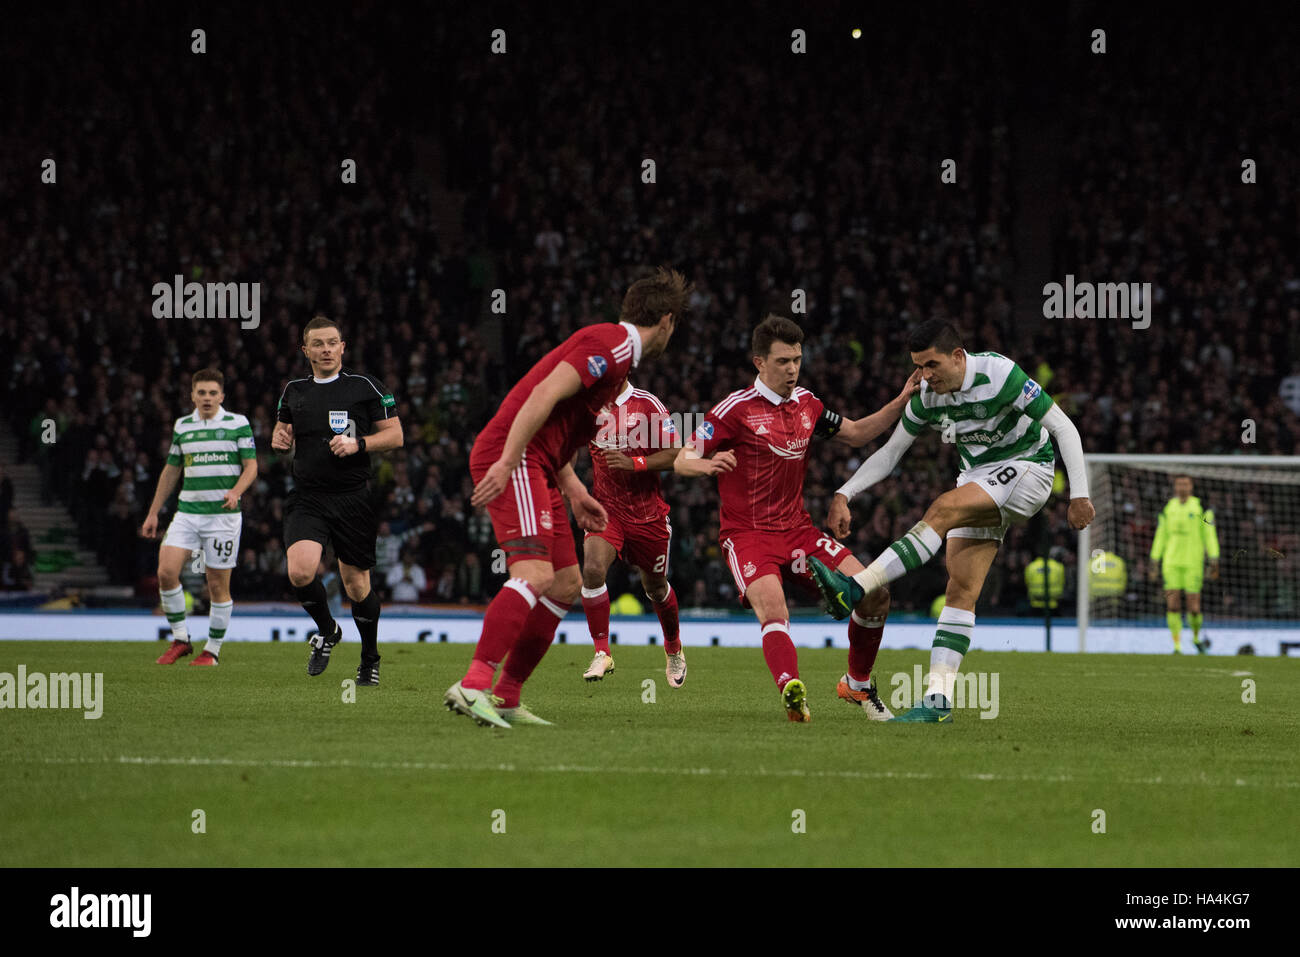 Aberdeen v Celtic, Betrfred League Cup Final, Glasgow, UK. 27th Nov, 2016.  Tom Rogic attacks Aberdeen defence Credit: - Stock Image